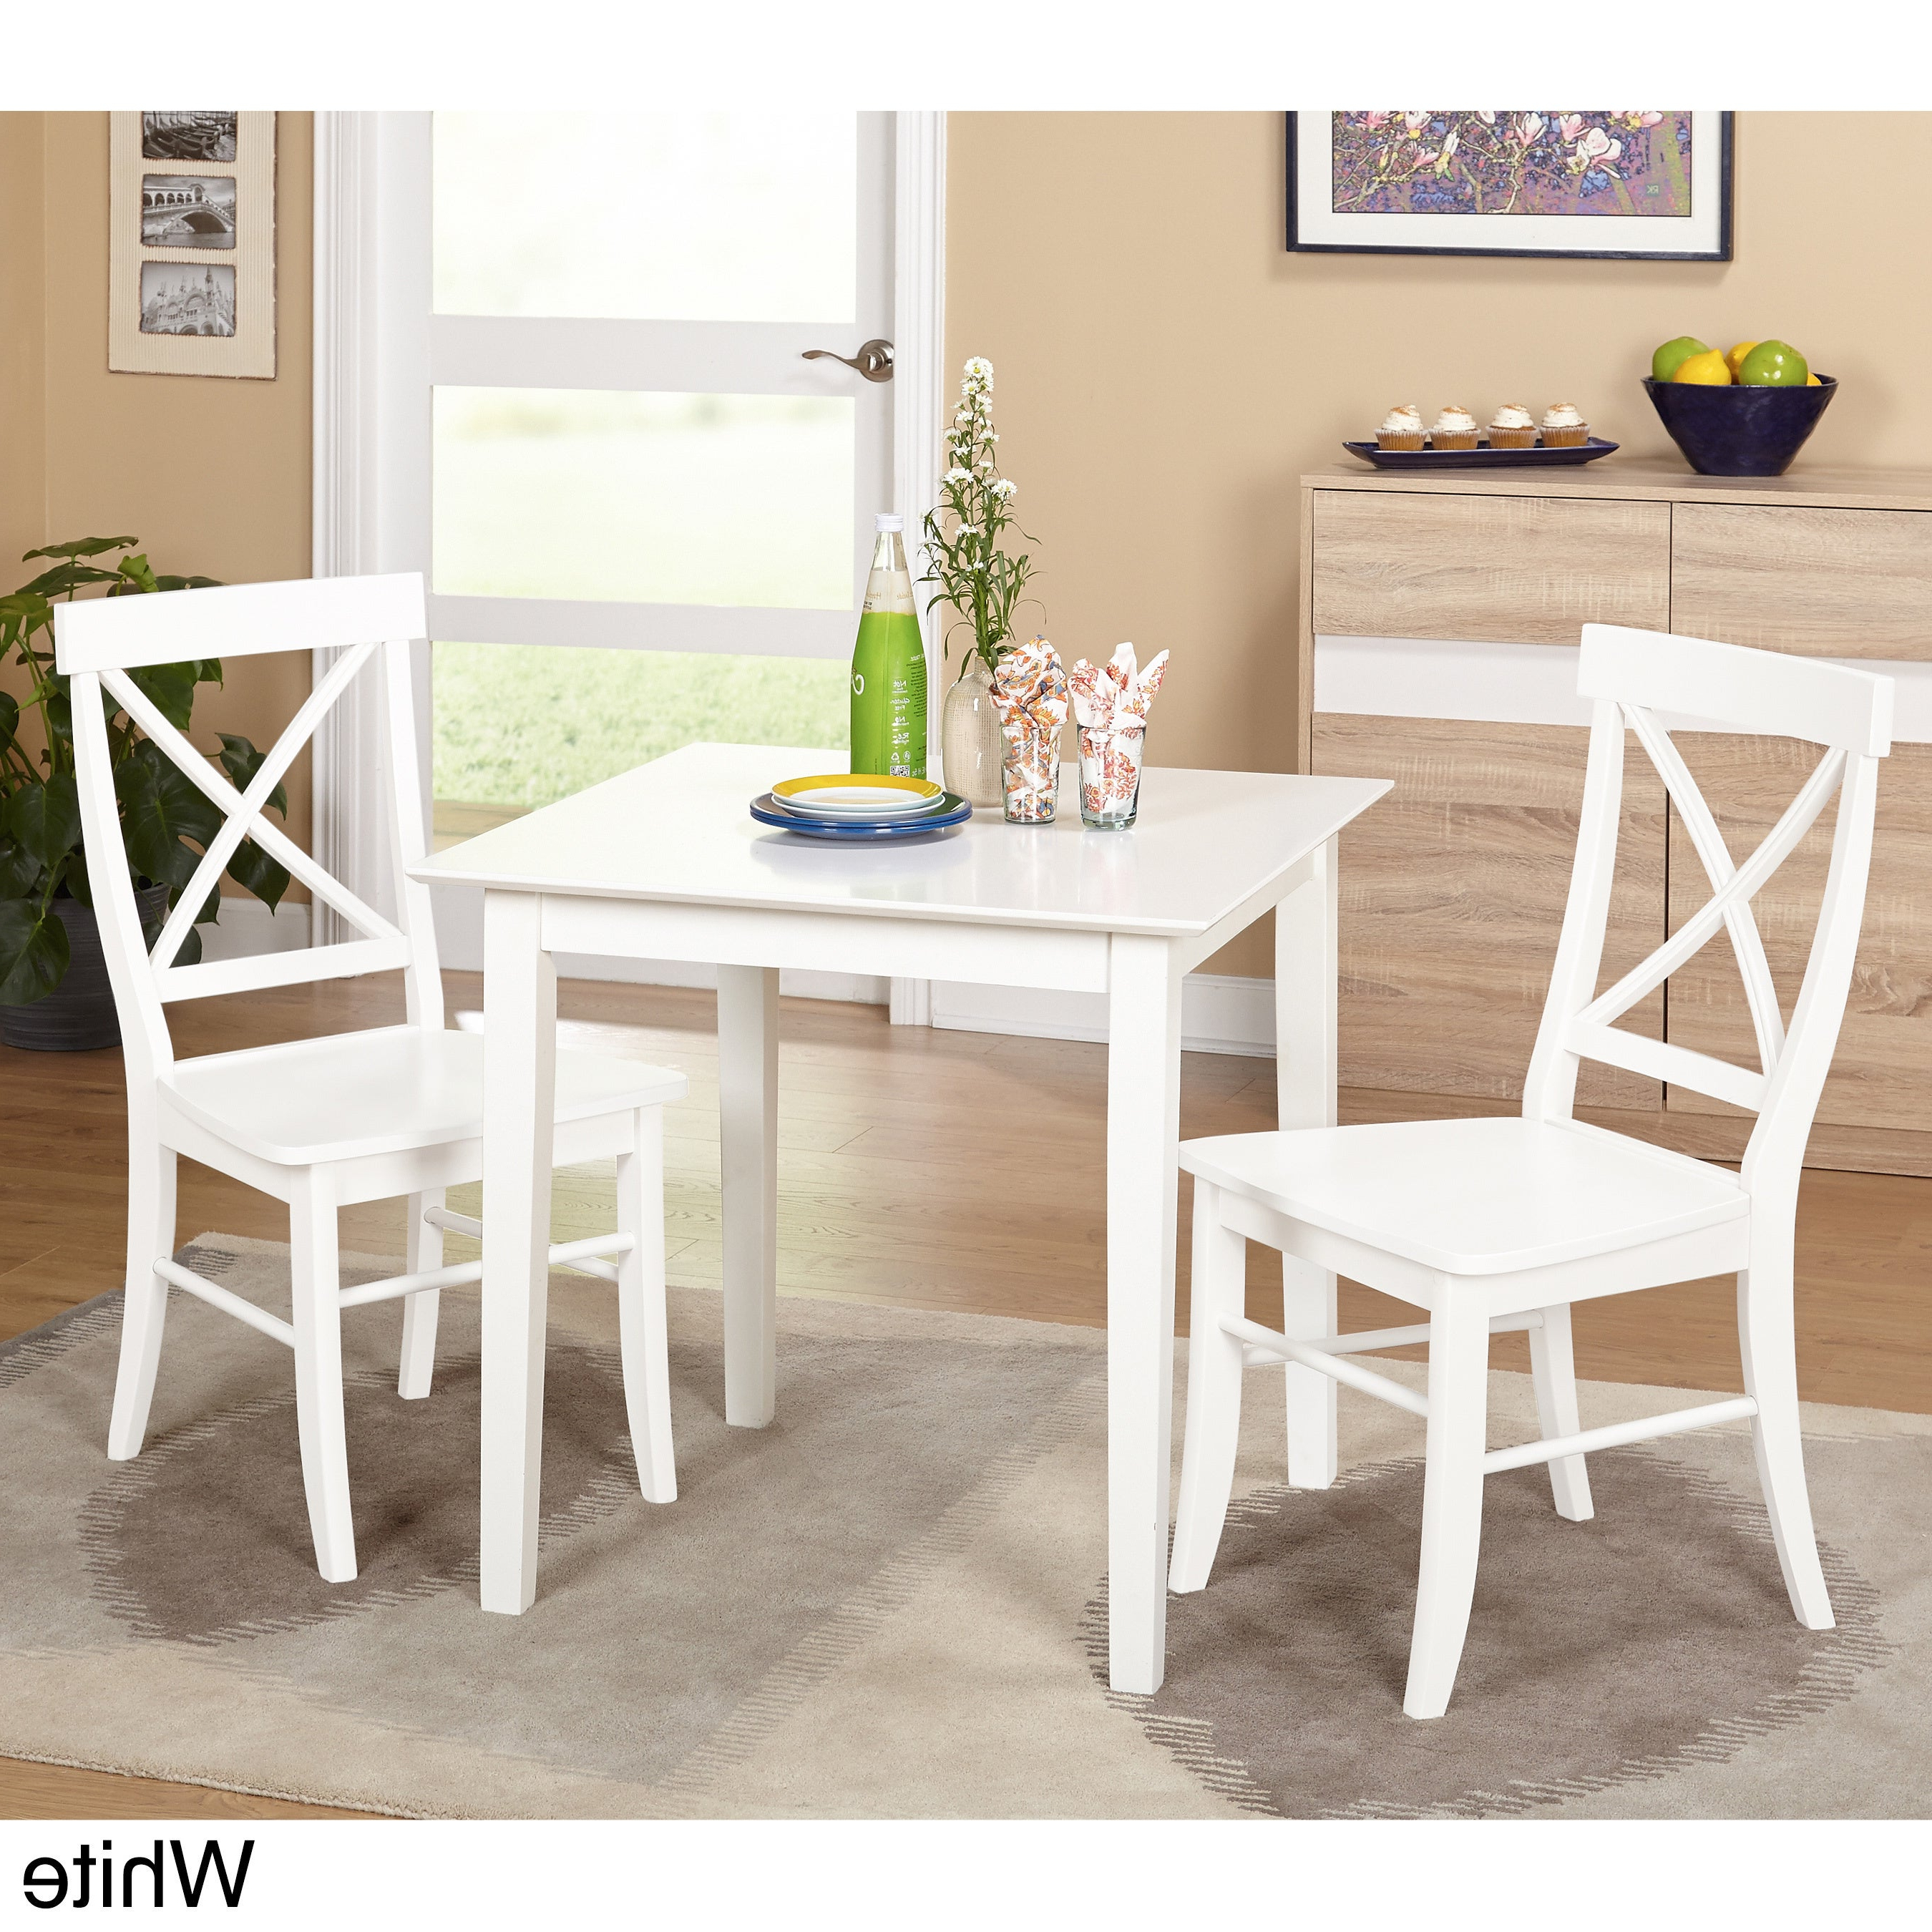 Buy 3 Piece Sets Kitchen & Dining Room Sets Online At Overstock Throughout Well Known Frida 3 Piece Dining Table Sets (View 3 of 20)